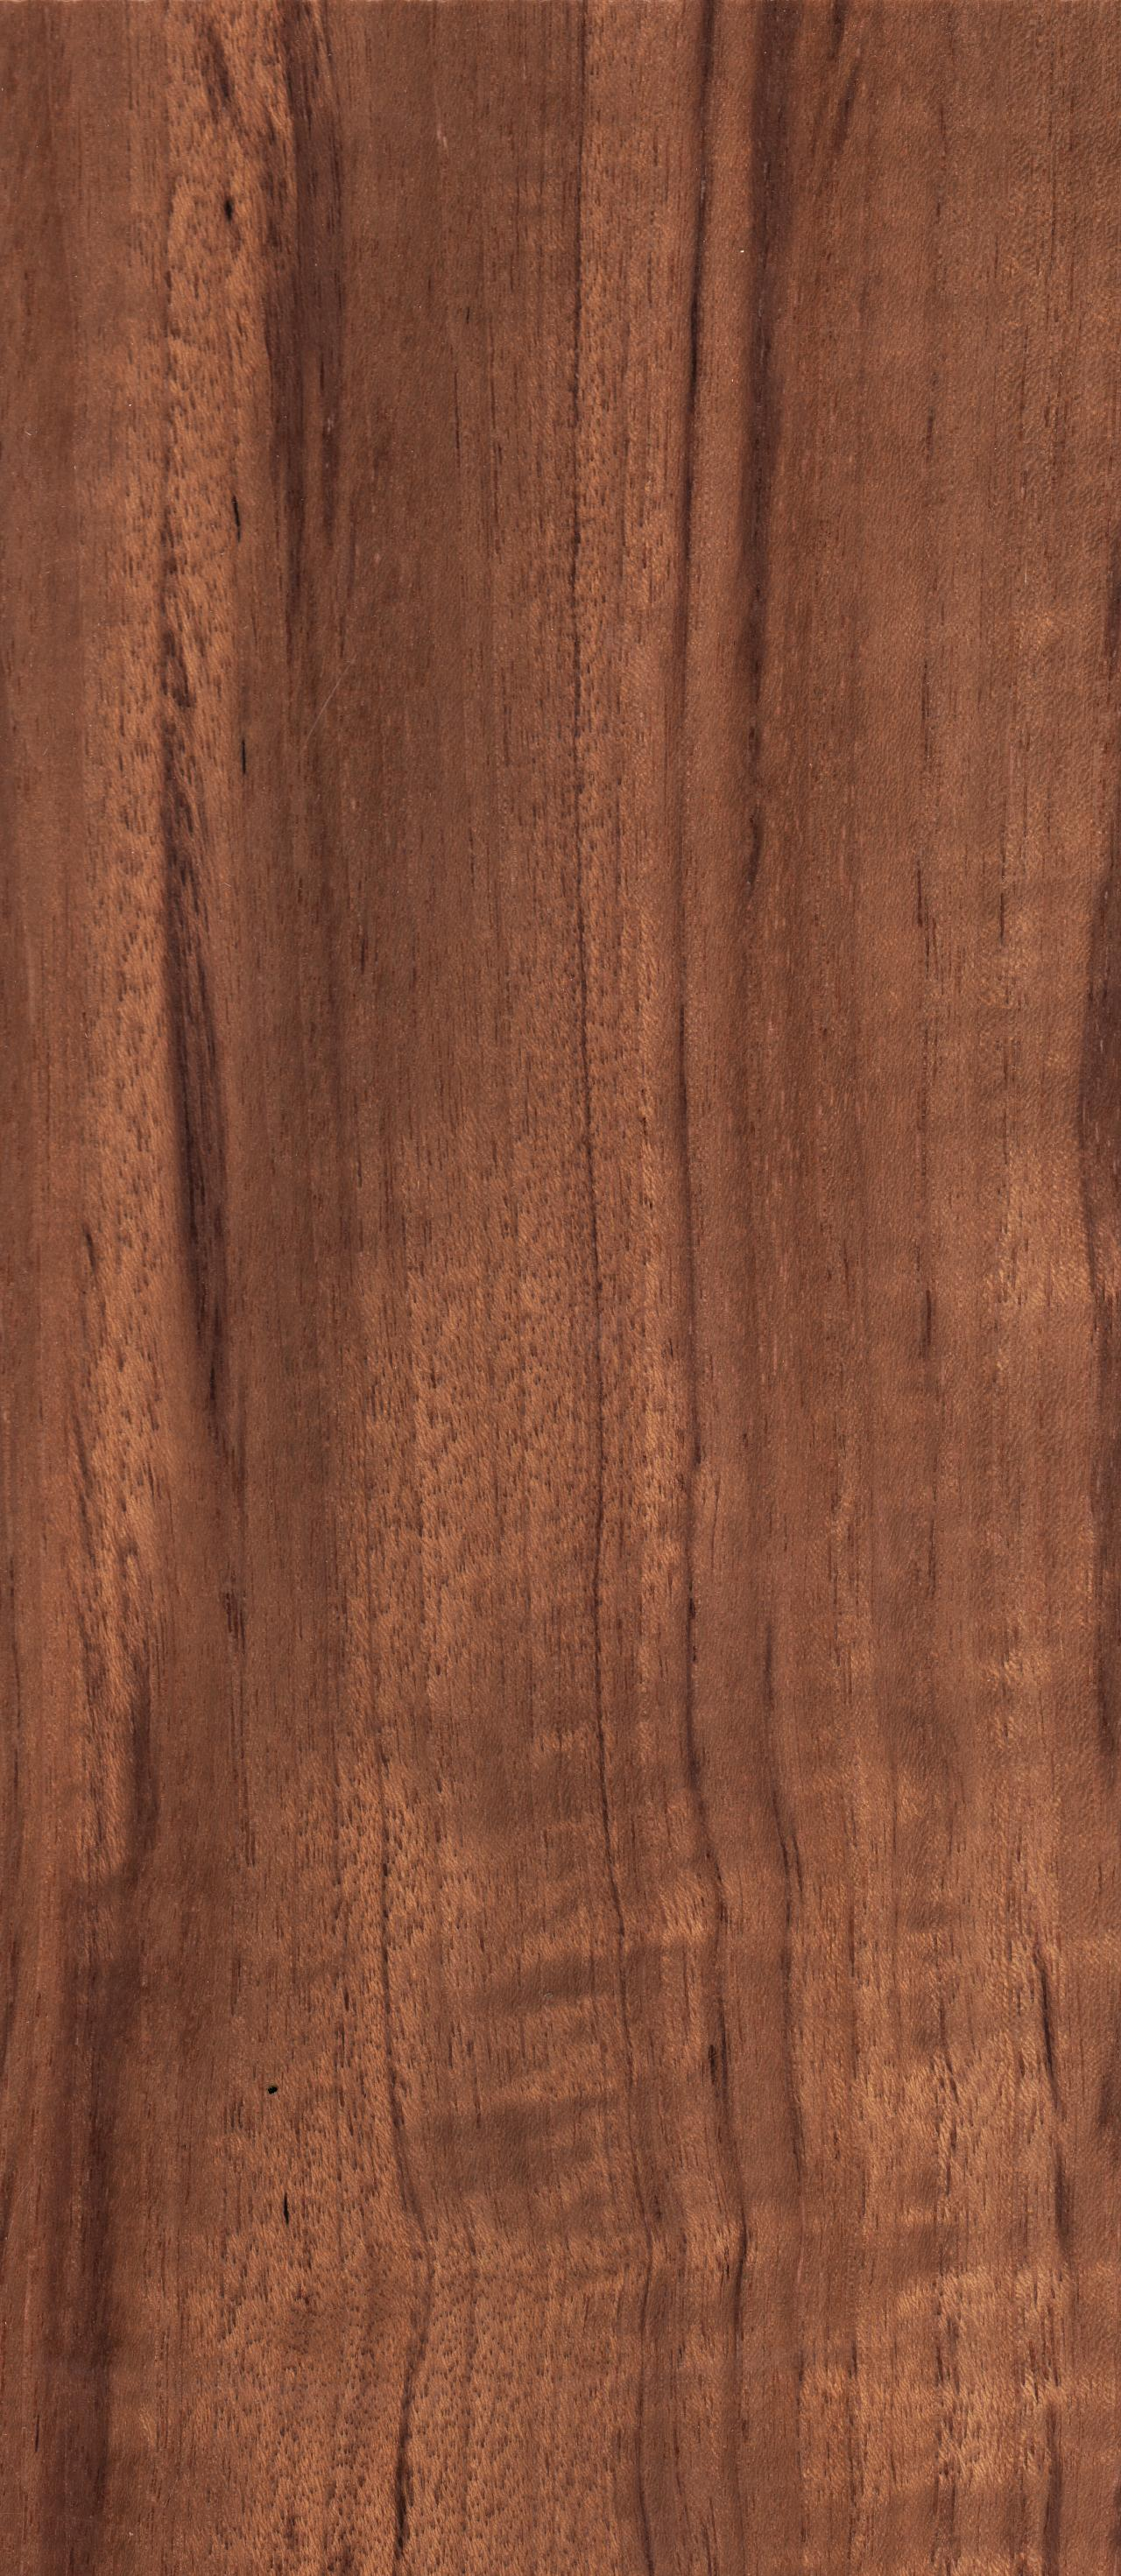 Polypalm Wood Products Sdn Bhd Tropical Hardwood Flooring